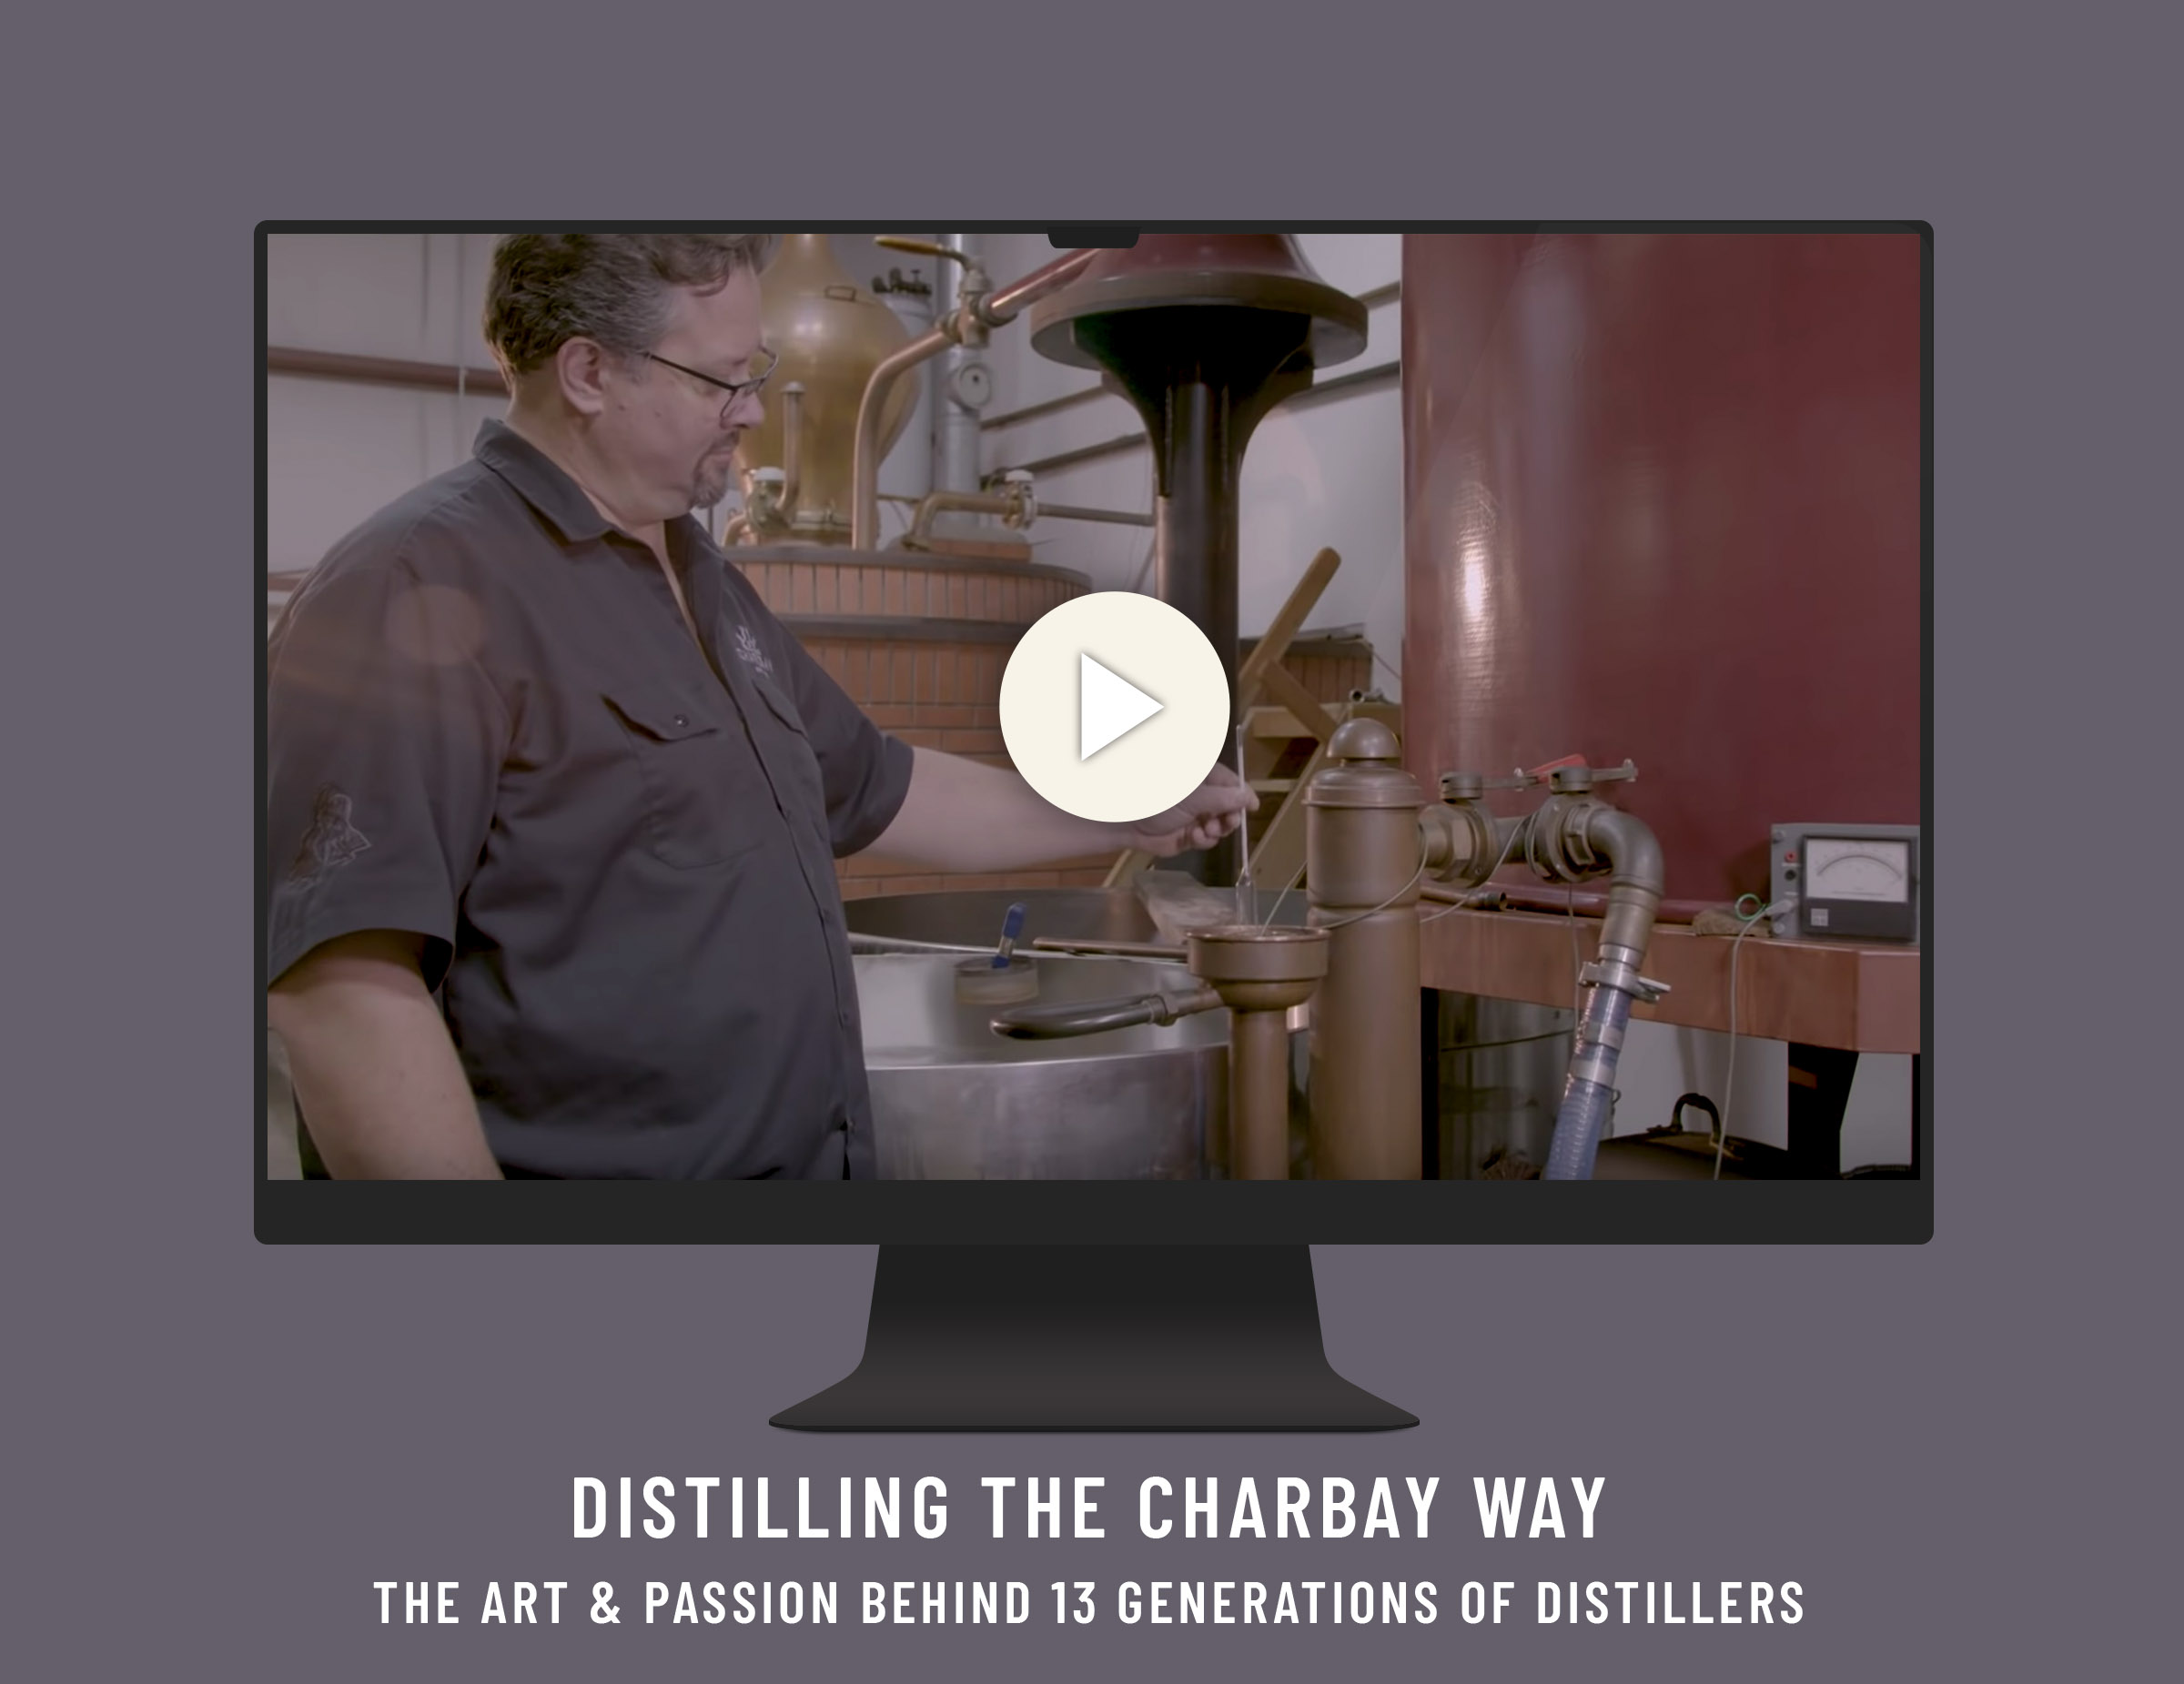 Distilling Charbay Way Video